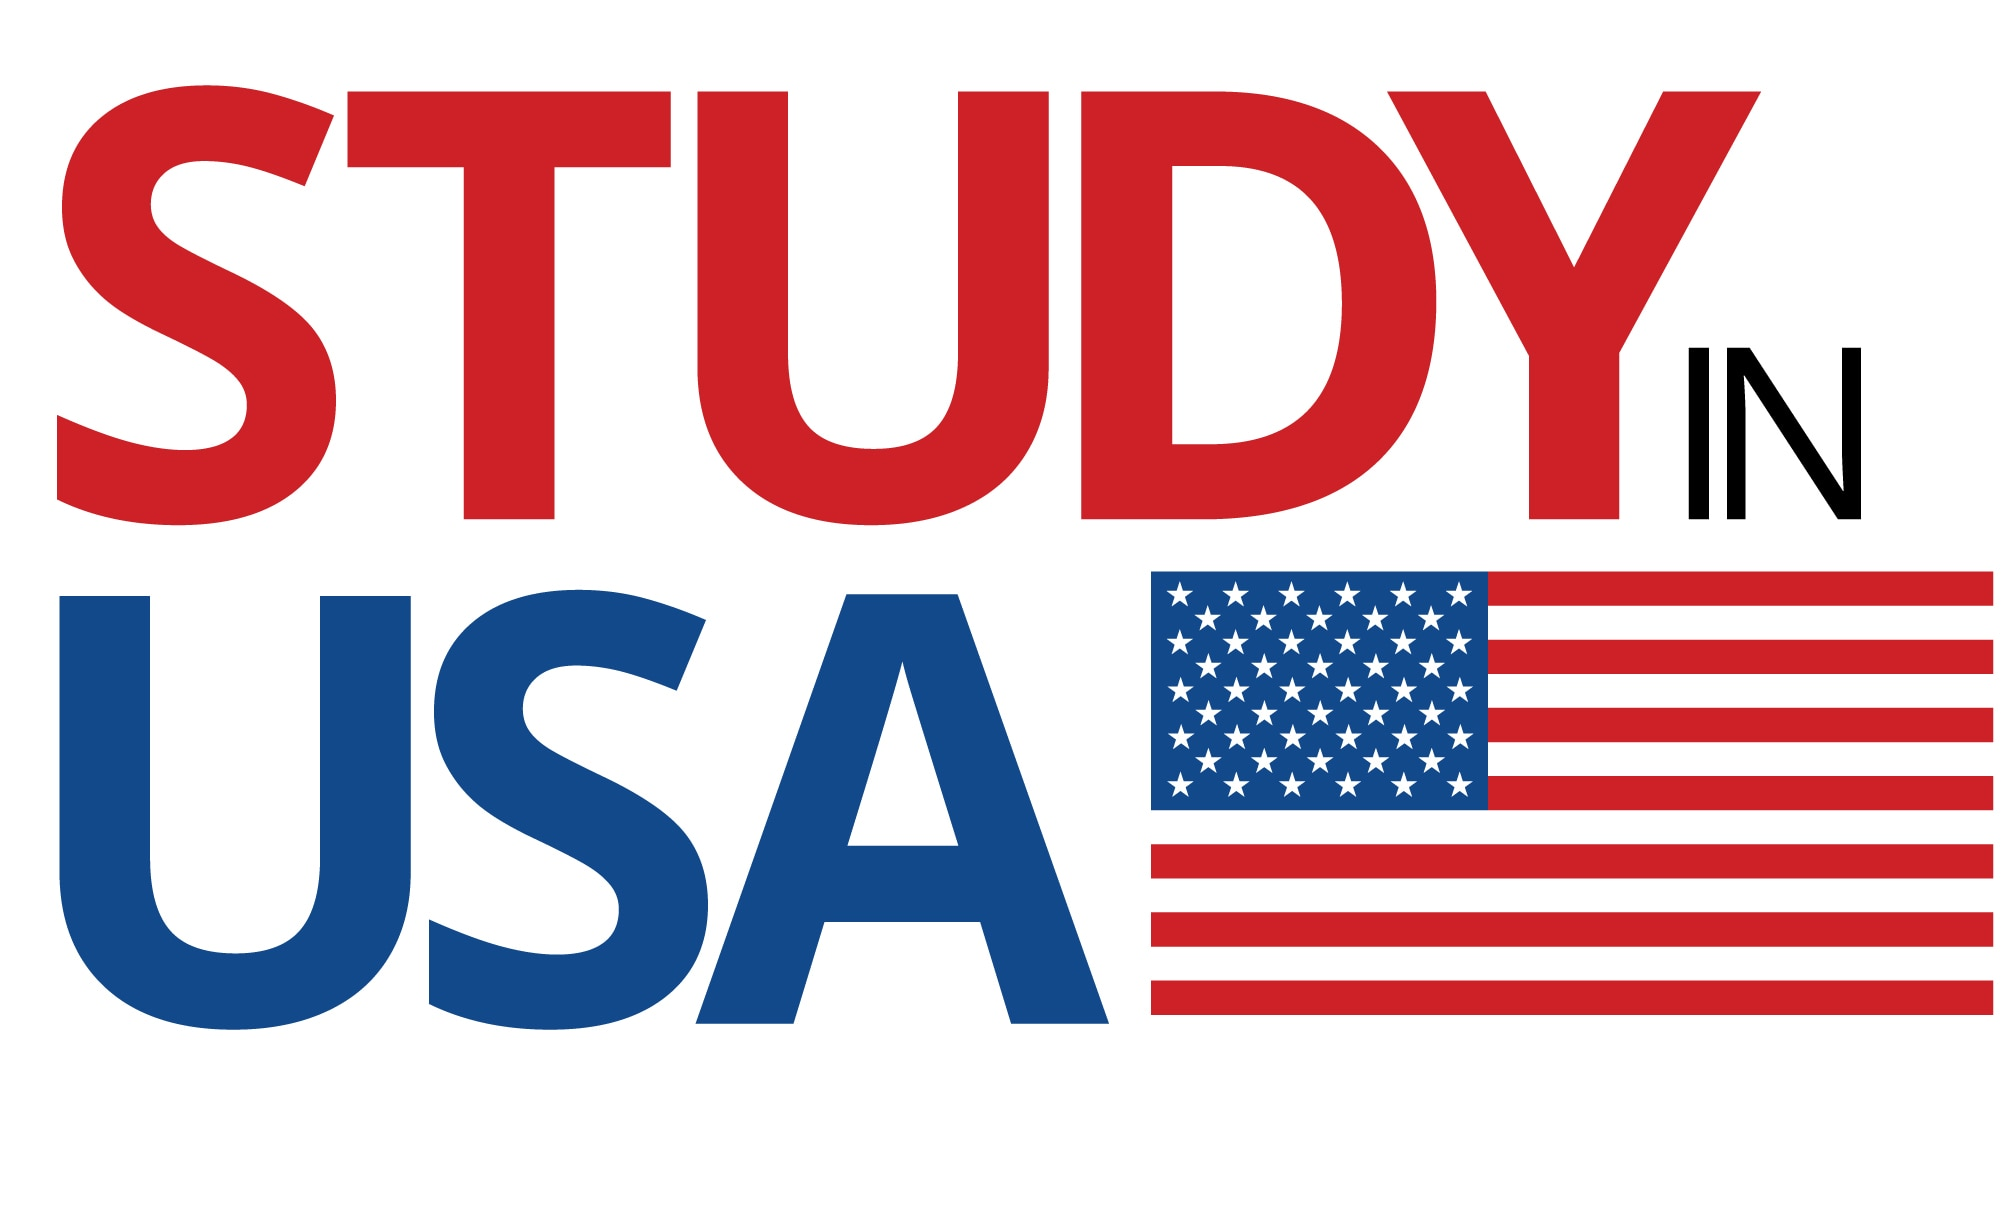 USA  With over 900,000 international students enrolled in its various universities. The USA boasts of some of the highly ranked institutions in the world. USA is hotspot for wide range of programs like #Engineering, #business that its universities offer and a flexibility which enables students to select between diverse subjects.  Top 5 Courses to study in USA  Business Management- 197258 Engineering - 196750 Maths and Computer Science - 112950 Social sciences - 75951 Physical and Life sciences - 73838  Top three sources of International students - China, India, South Korea